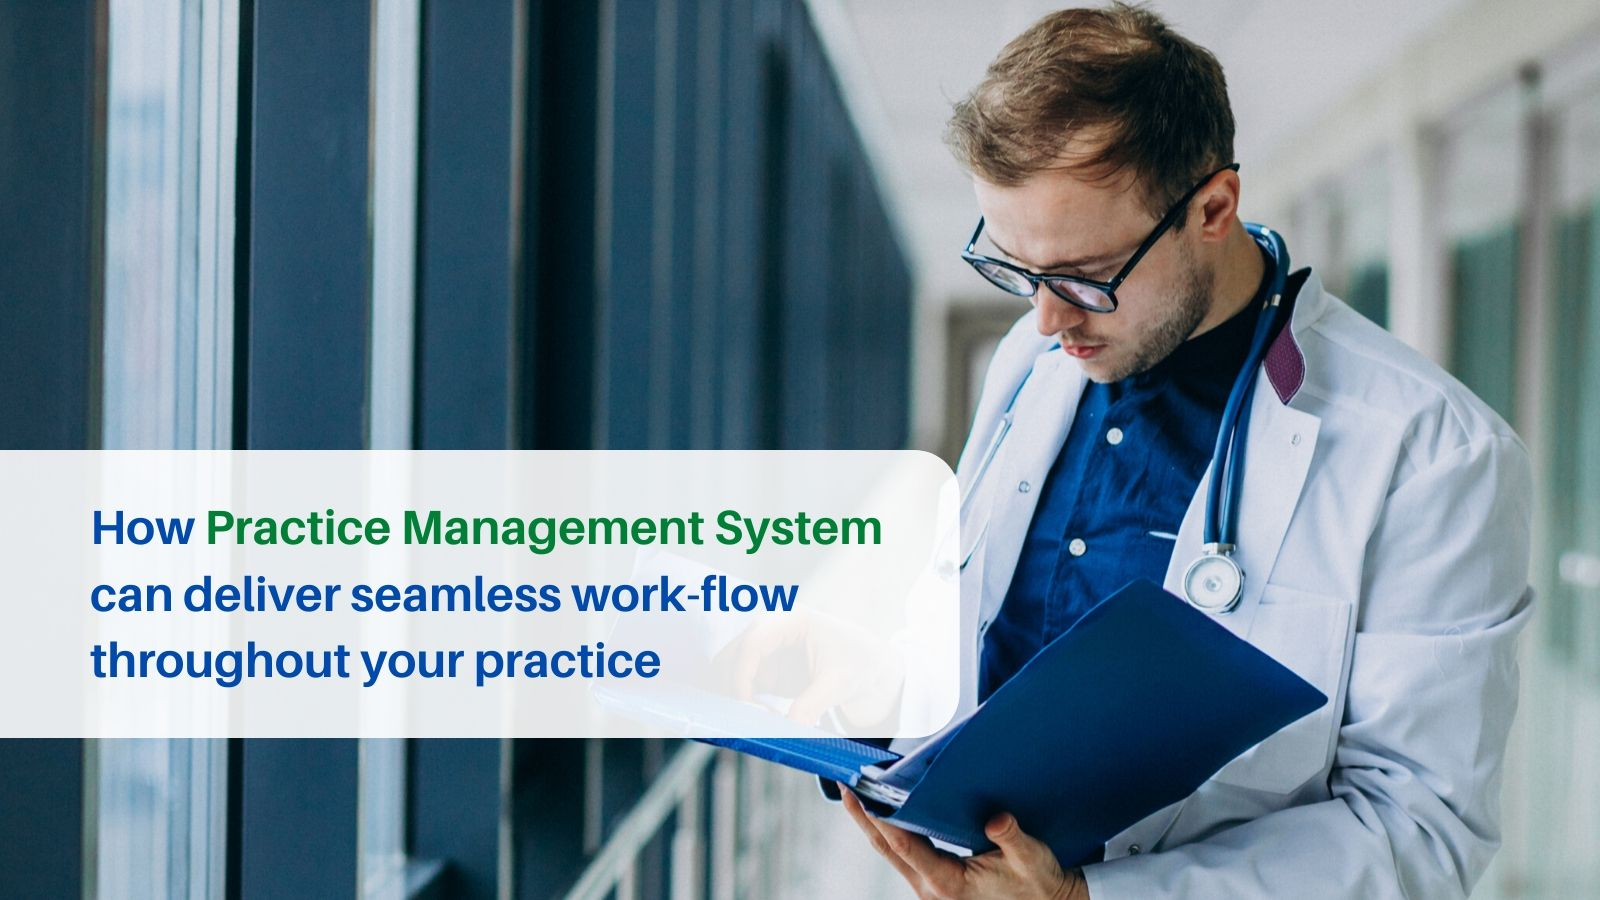 How Practice Management System can deliver seamless work-flow